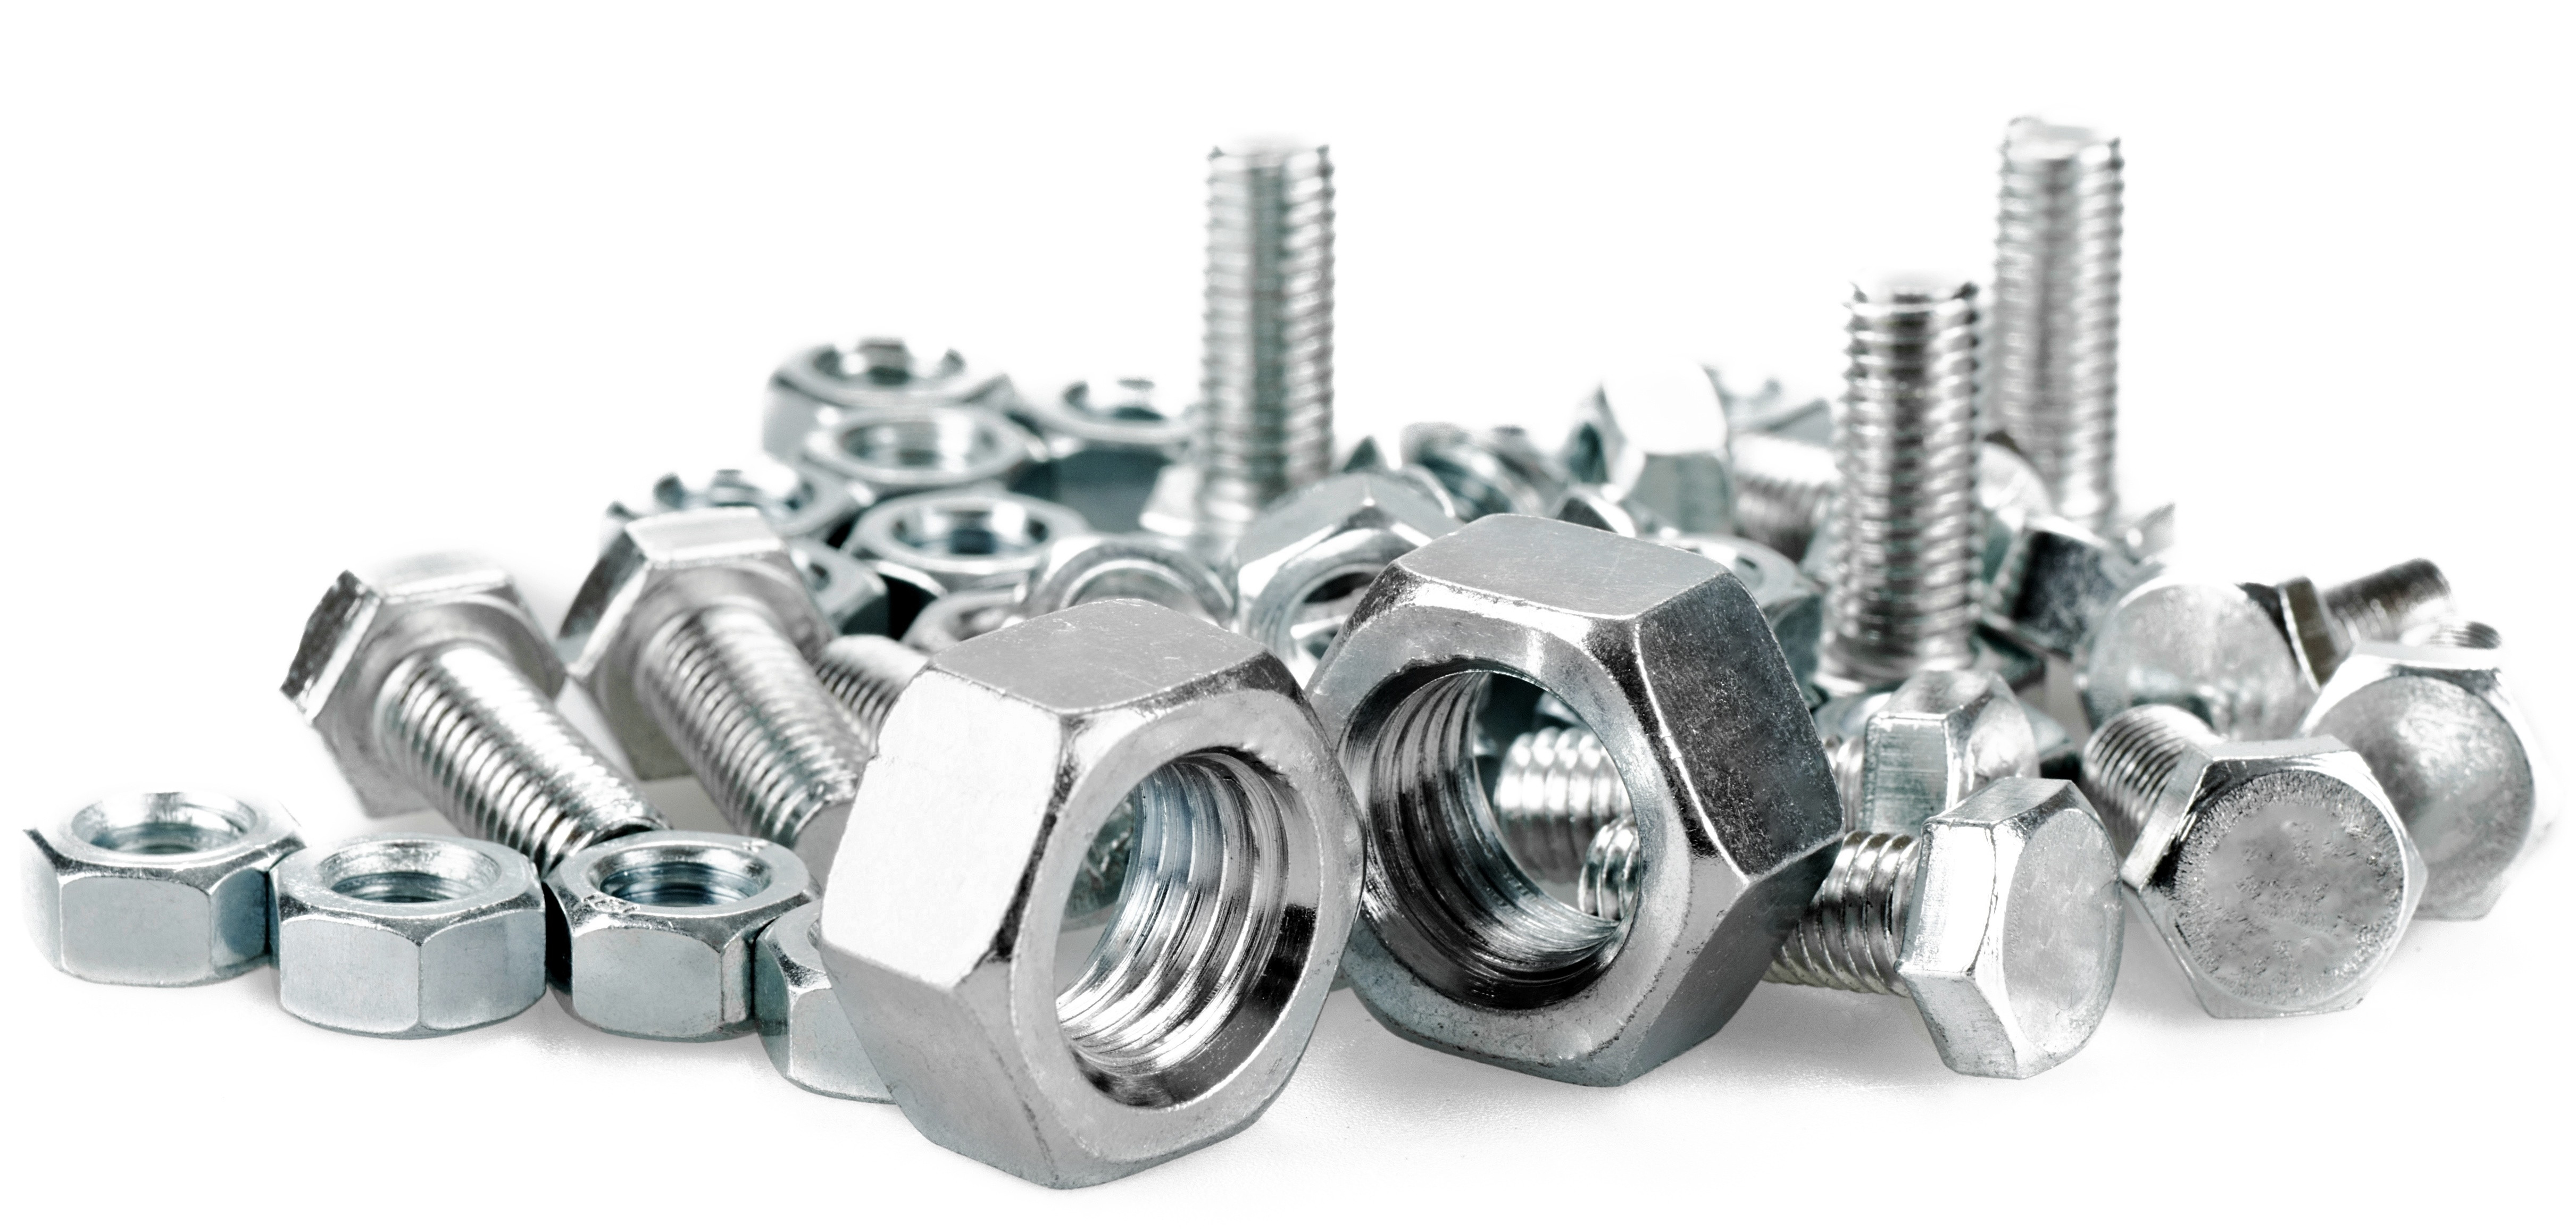 Centennial Bolt | Industrial Fasteners & Supply | United States